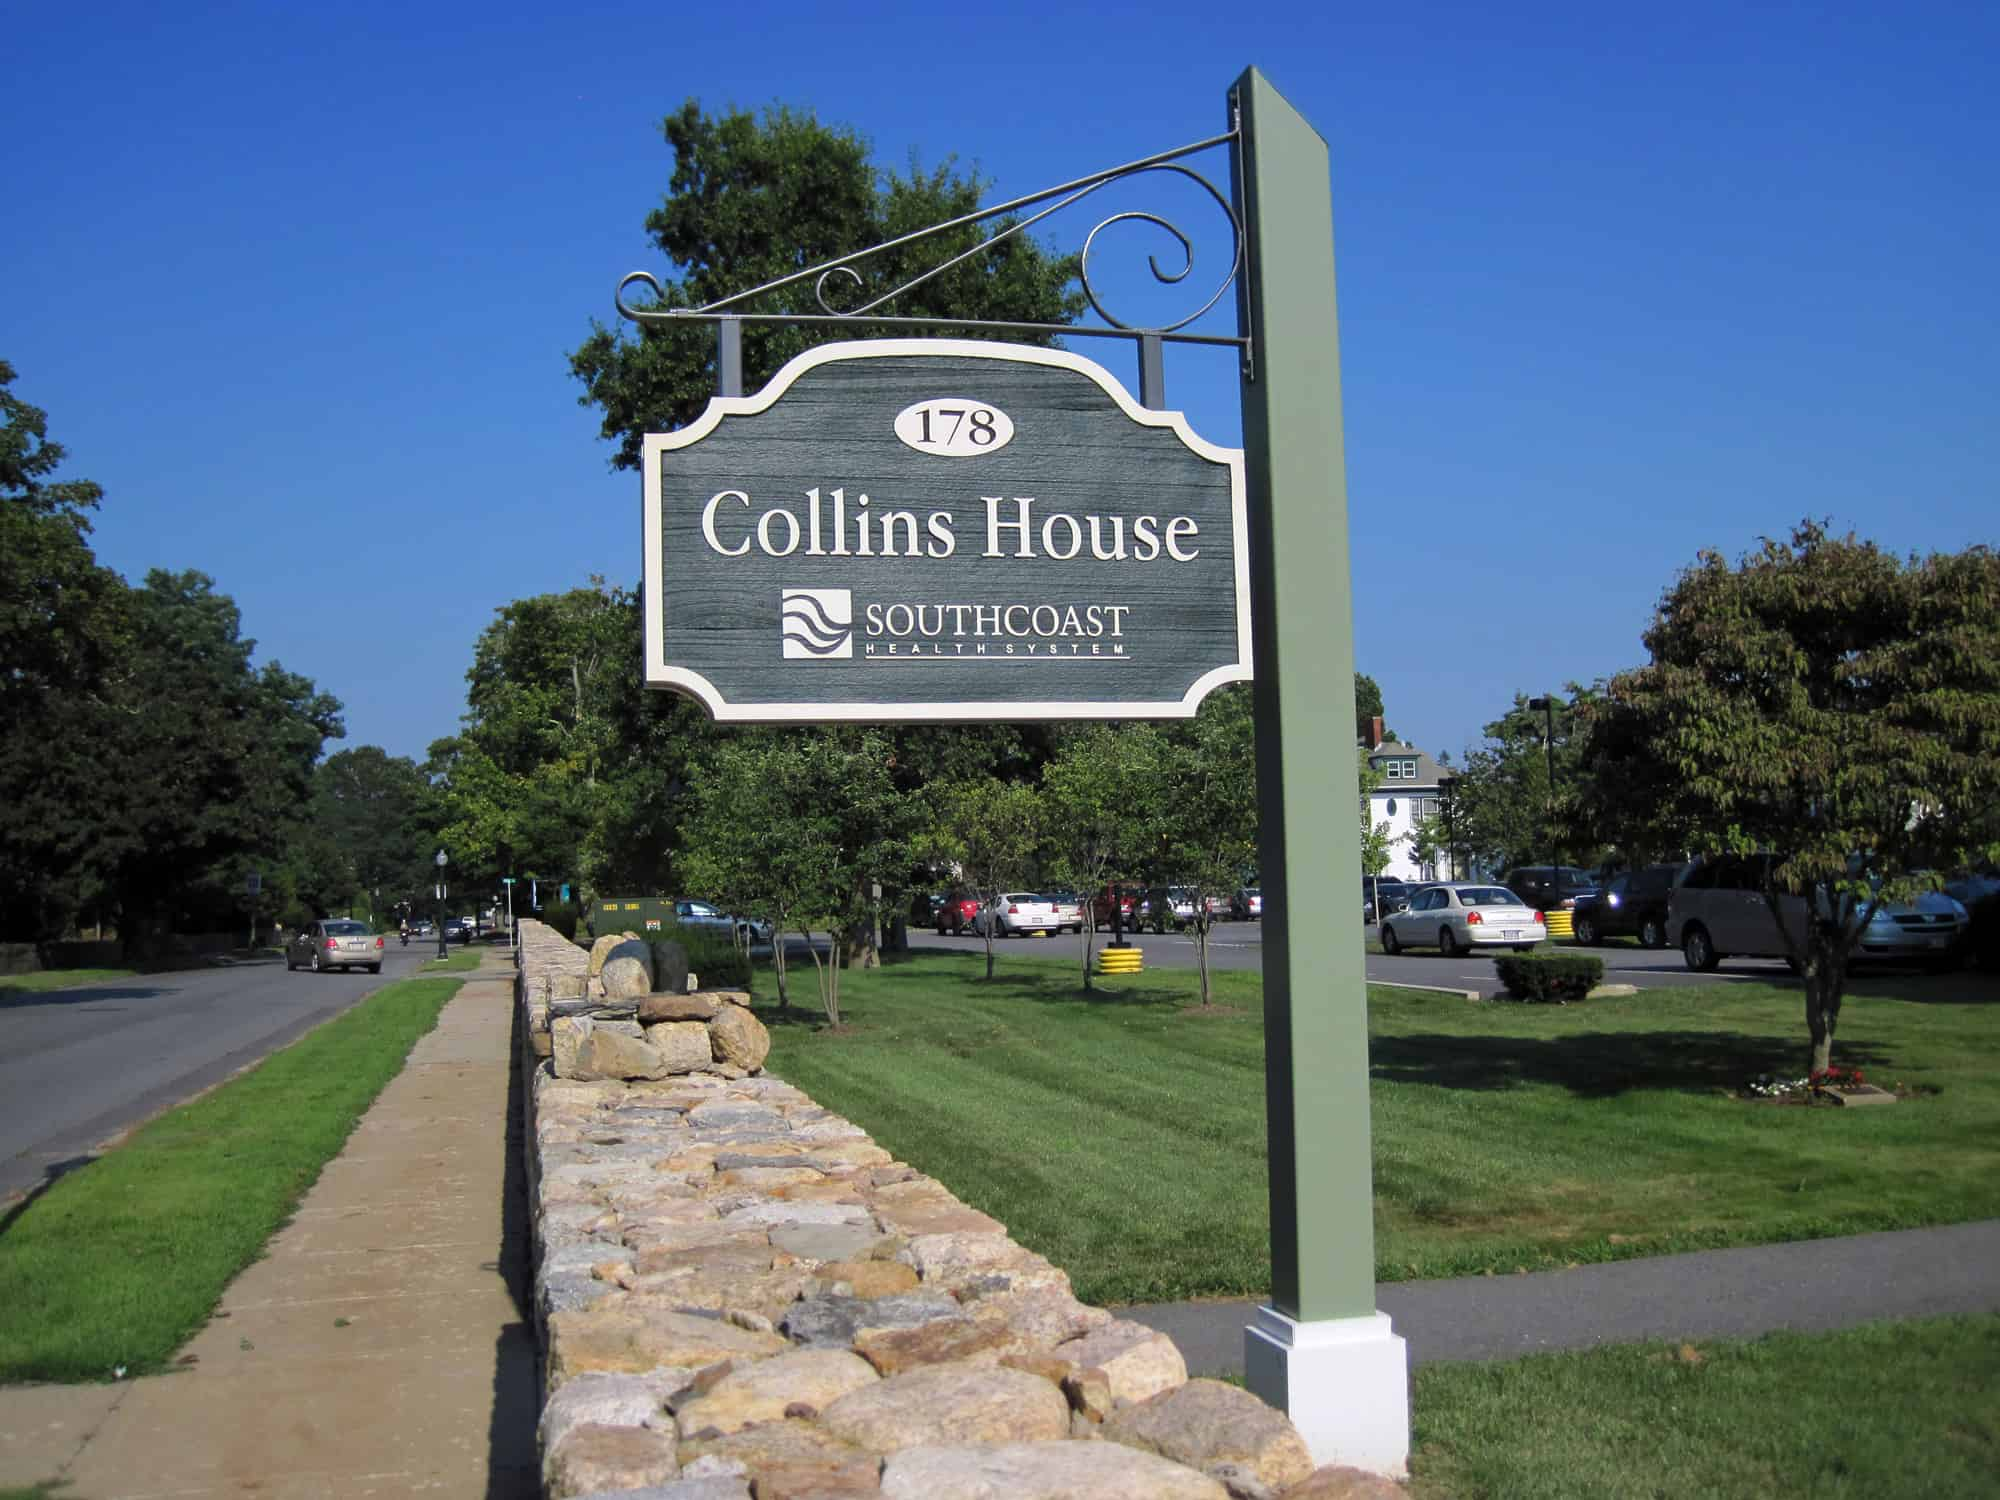 Post sign for Collins House